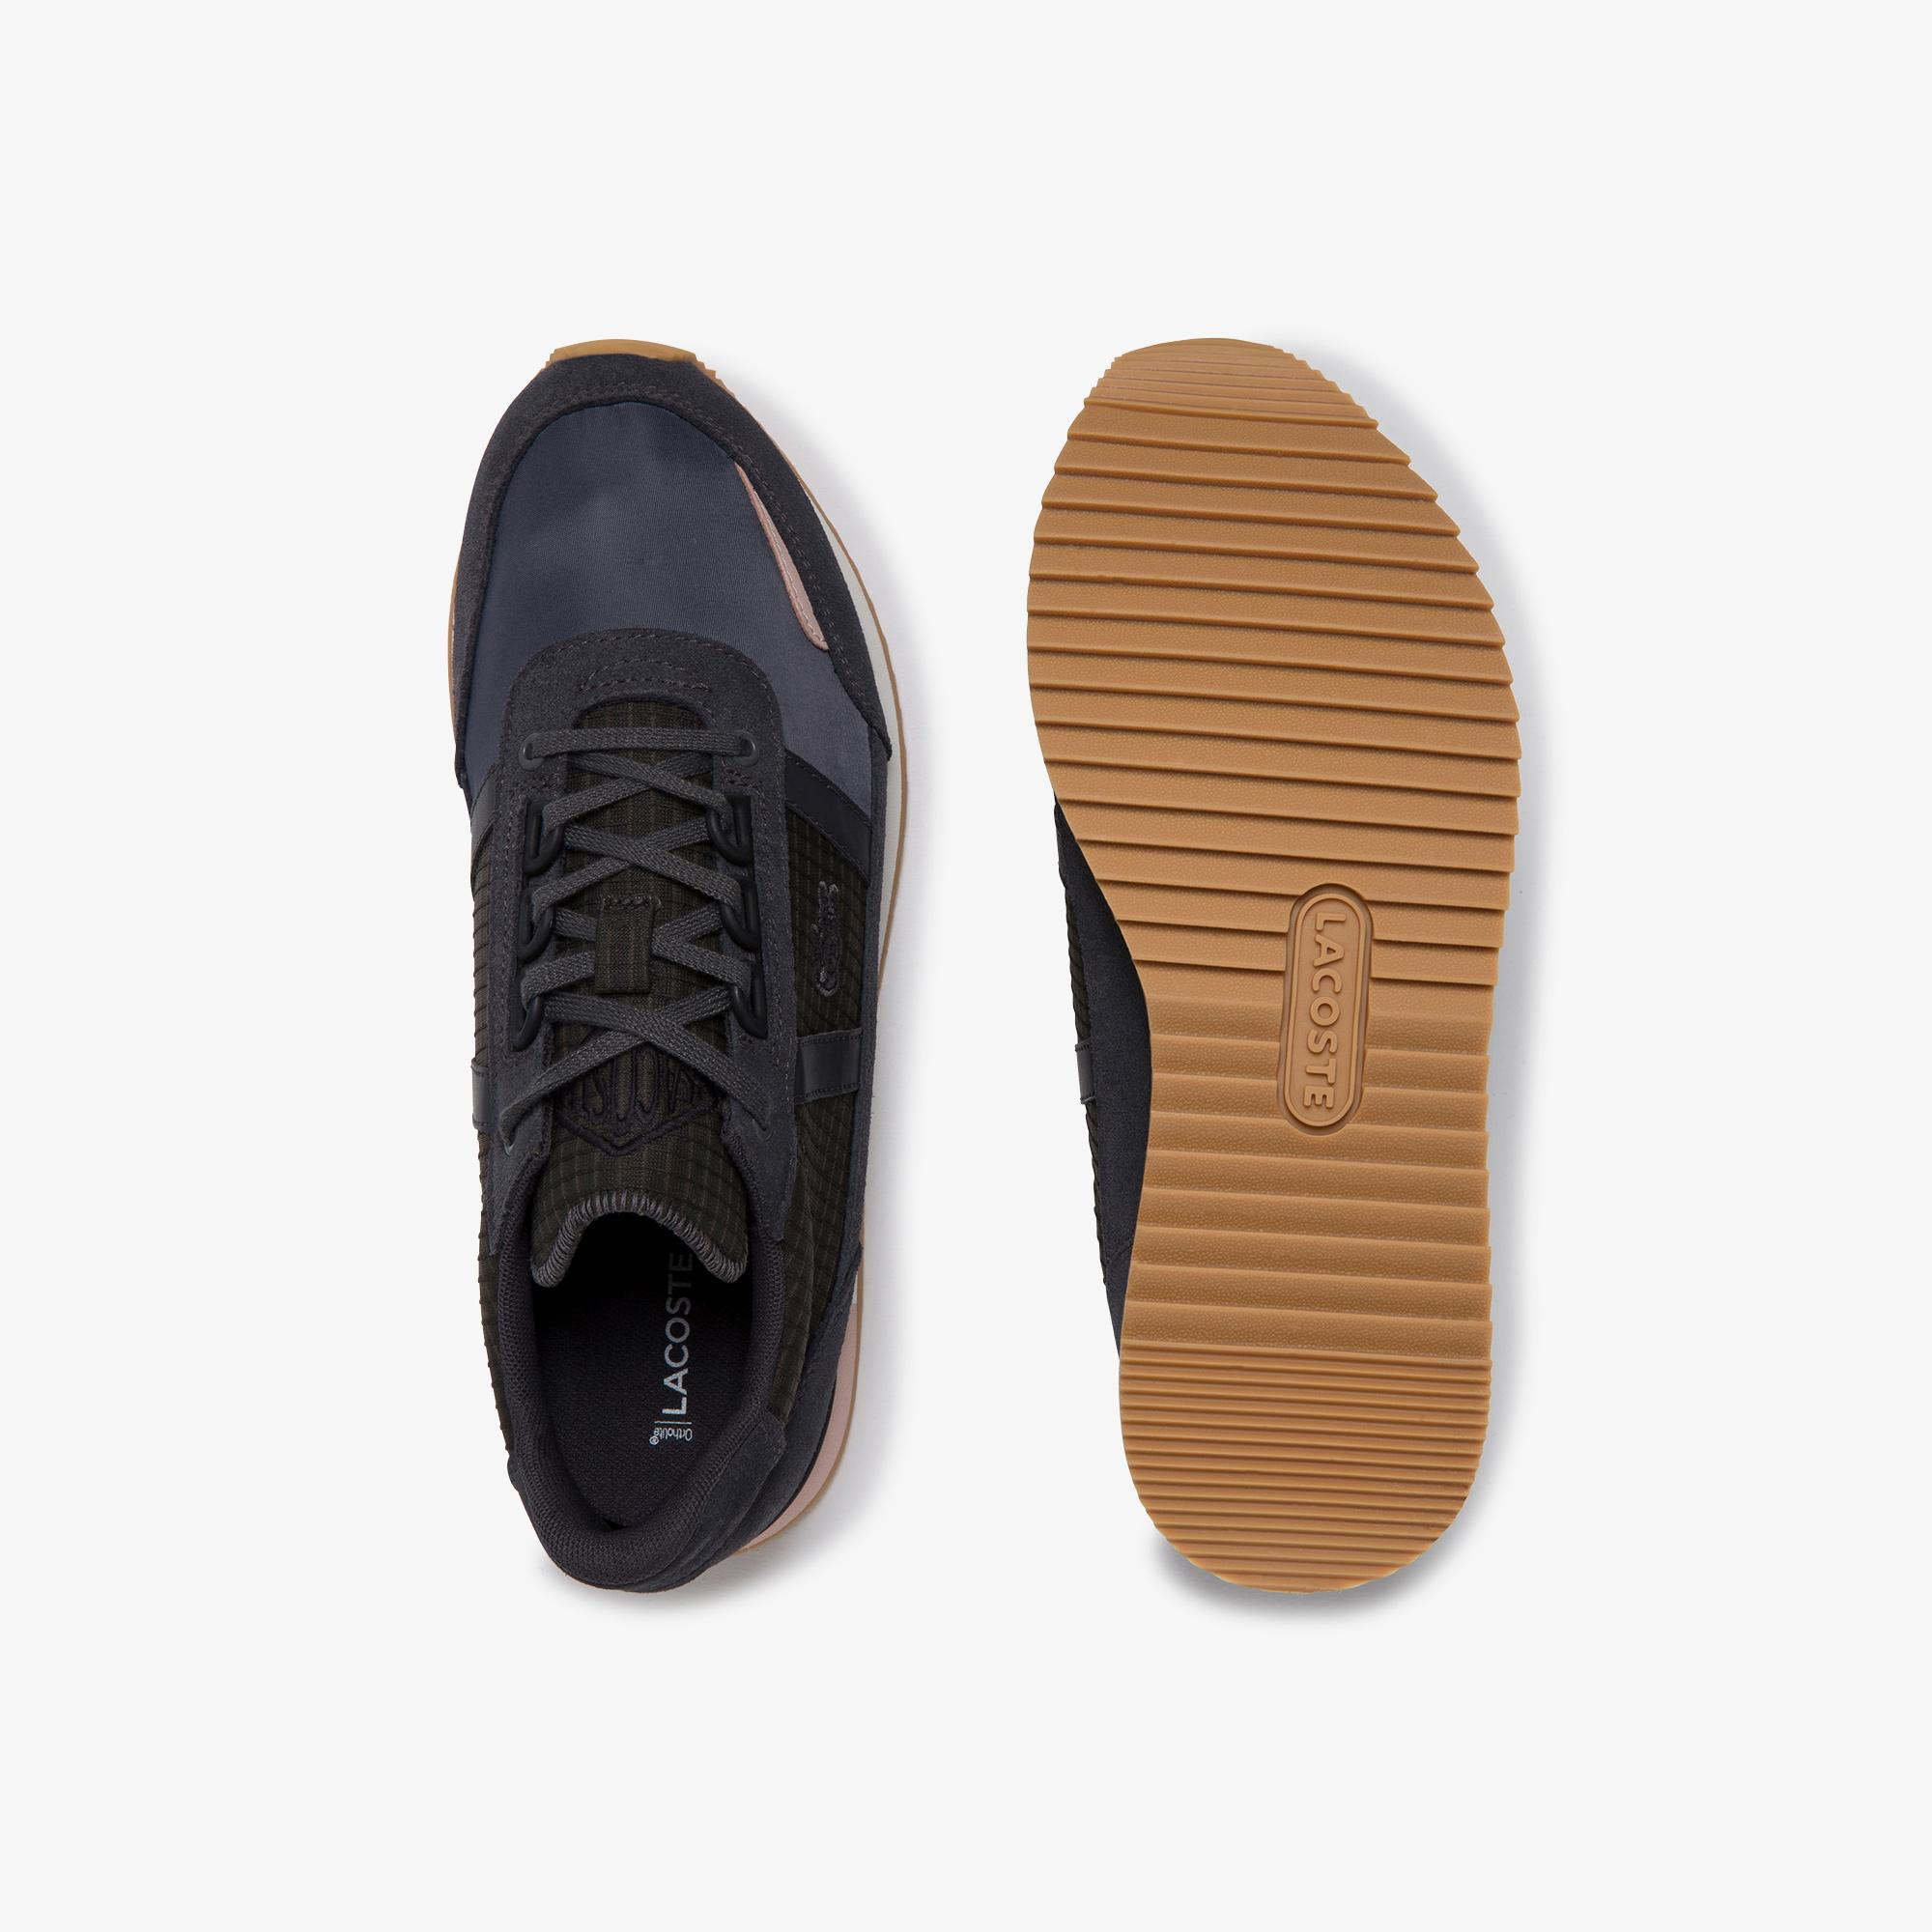 Lacoste Partner Retro 120 2 Damskie Sneakersy